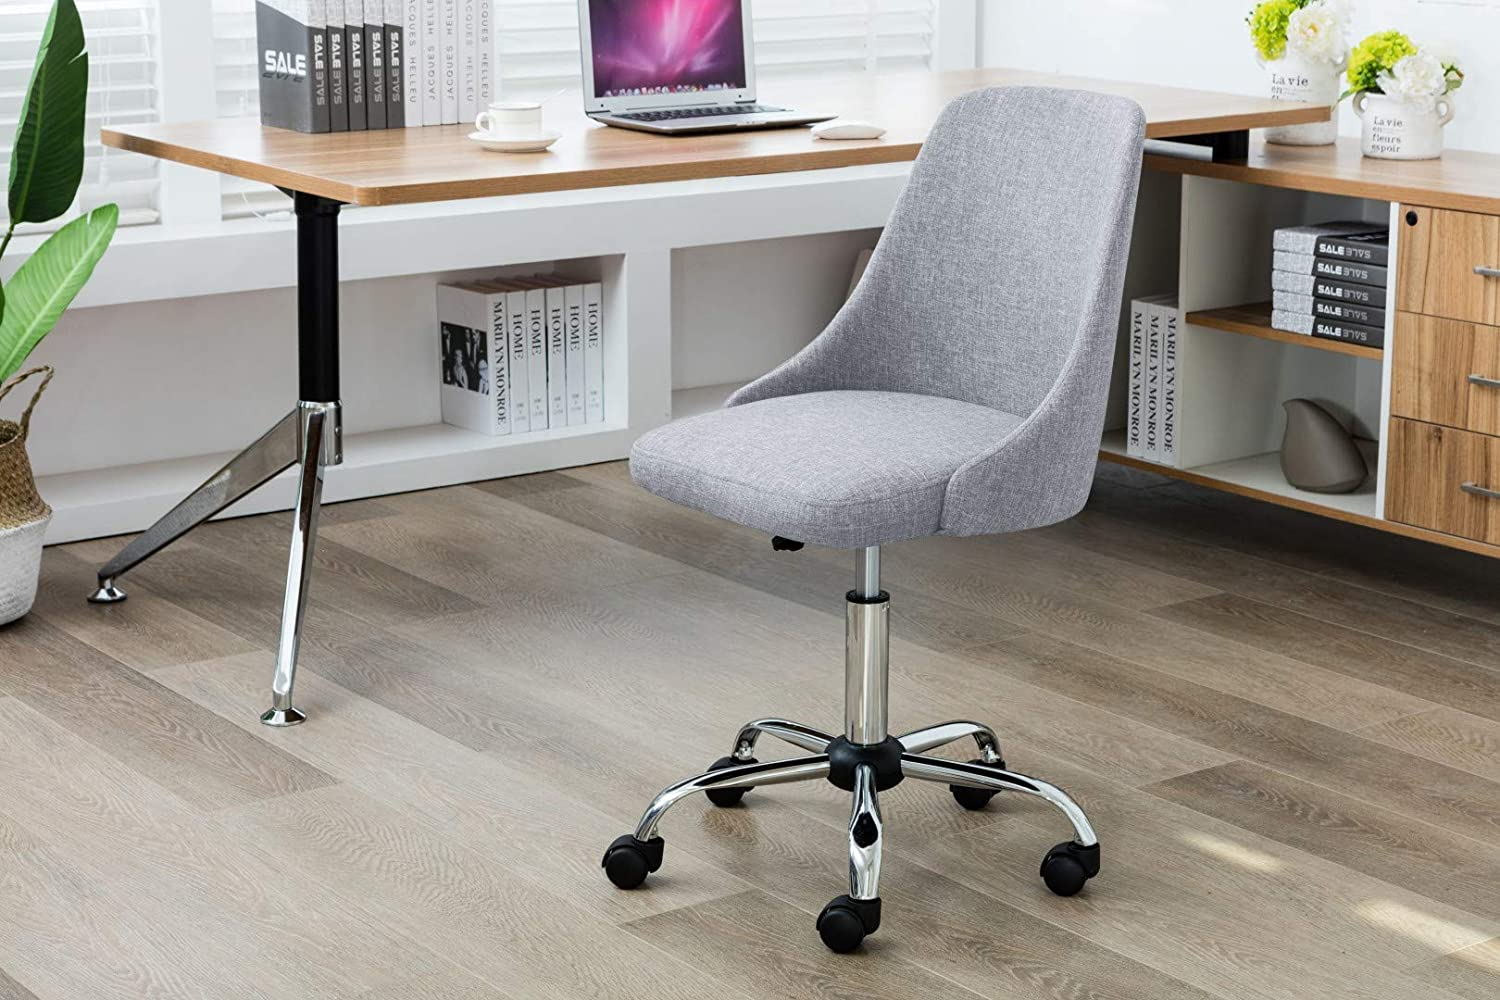 Porthos Home EFC023A Gry Roache Task Chair with Adjustable Height, 360° Swivel and 5-Claw Metal Base with Roller Caster Wheels (Hemp Fabric Upholstery, for Home and Office Uses), One Size, Grey